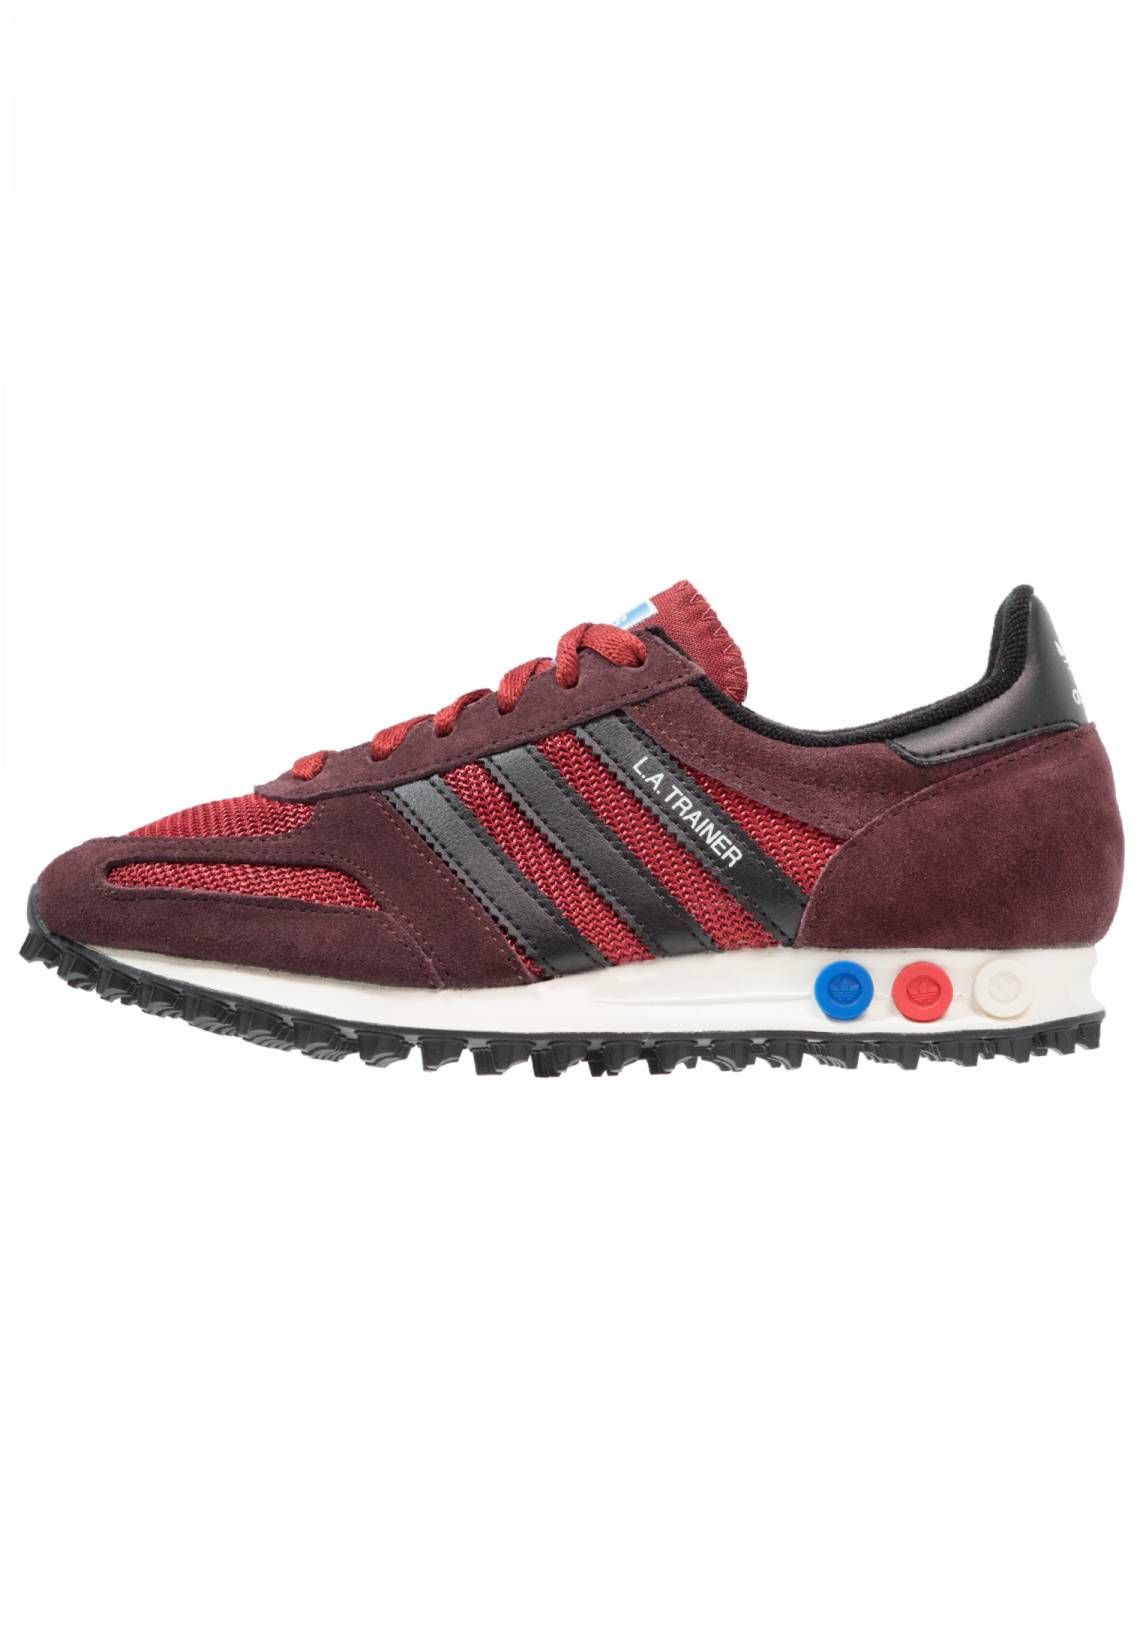 Redcore Mystery Blacknight Og Trainer La Trainers Brown tsrQdxCBoh